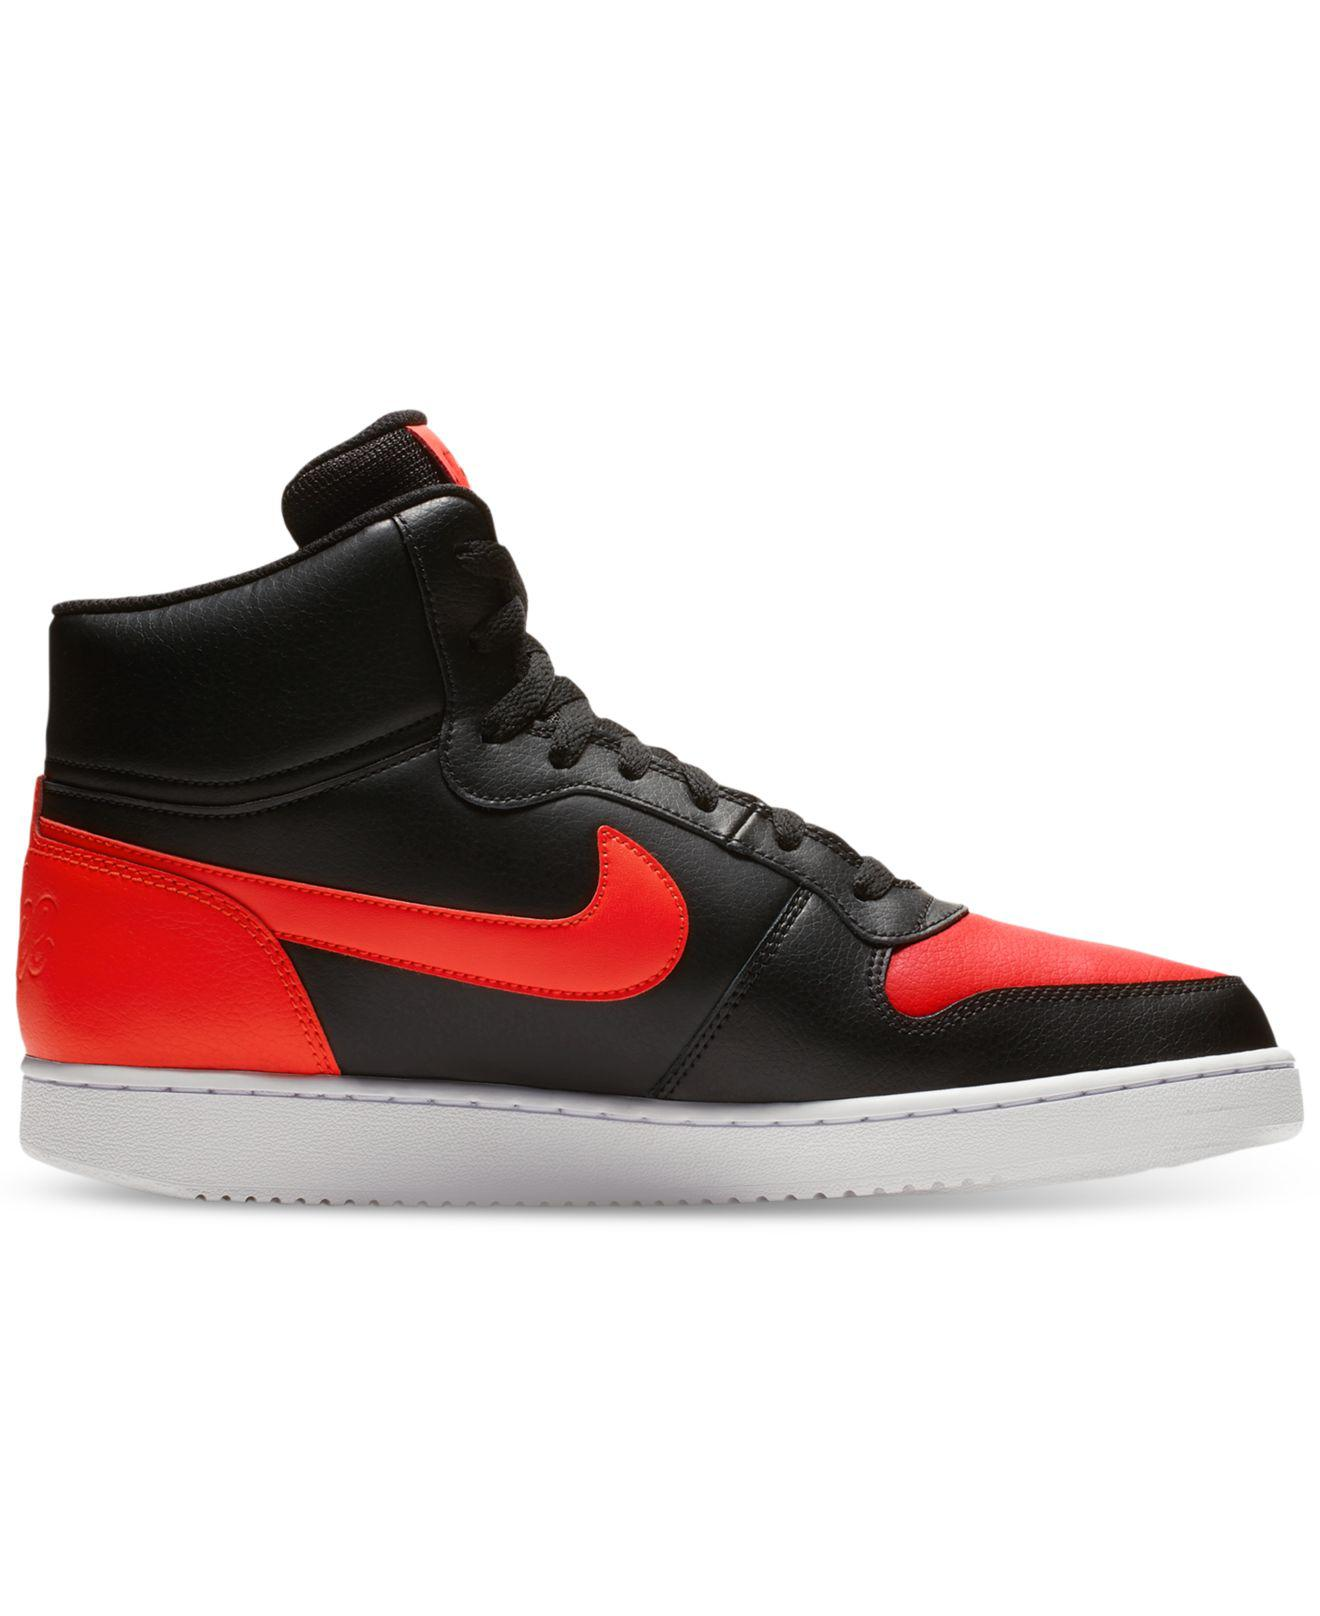 low priced dcc3e 772f8 Nike Ebernon Mid Casual Sneakers From Finish Line for Men - Save 13% - Lyst